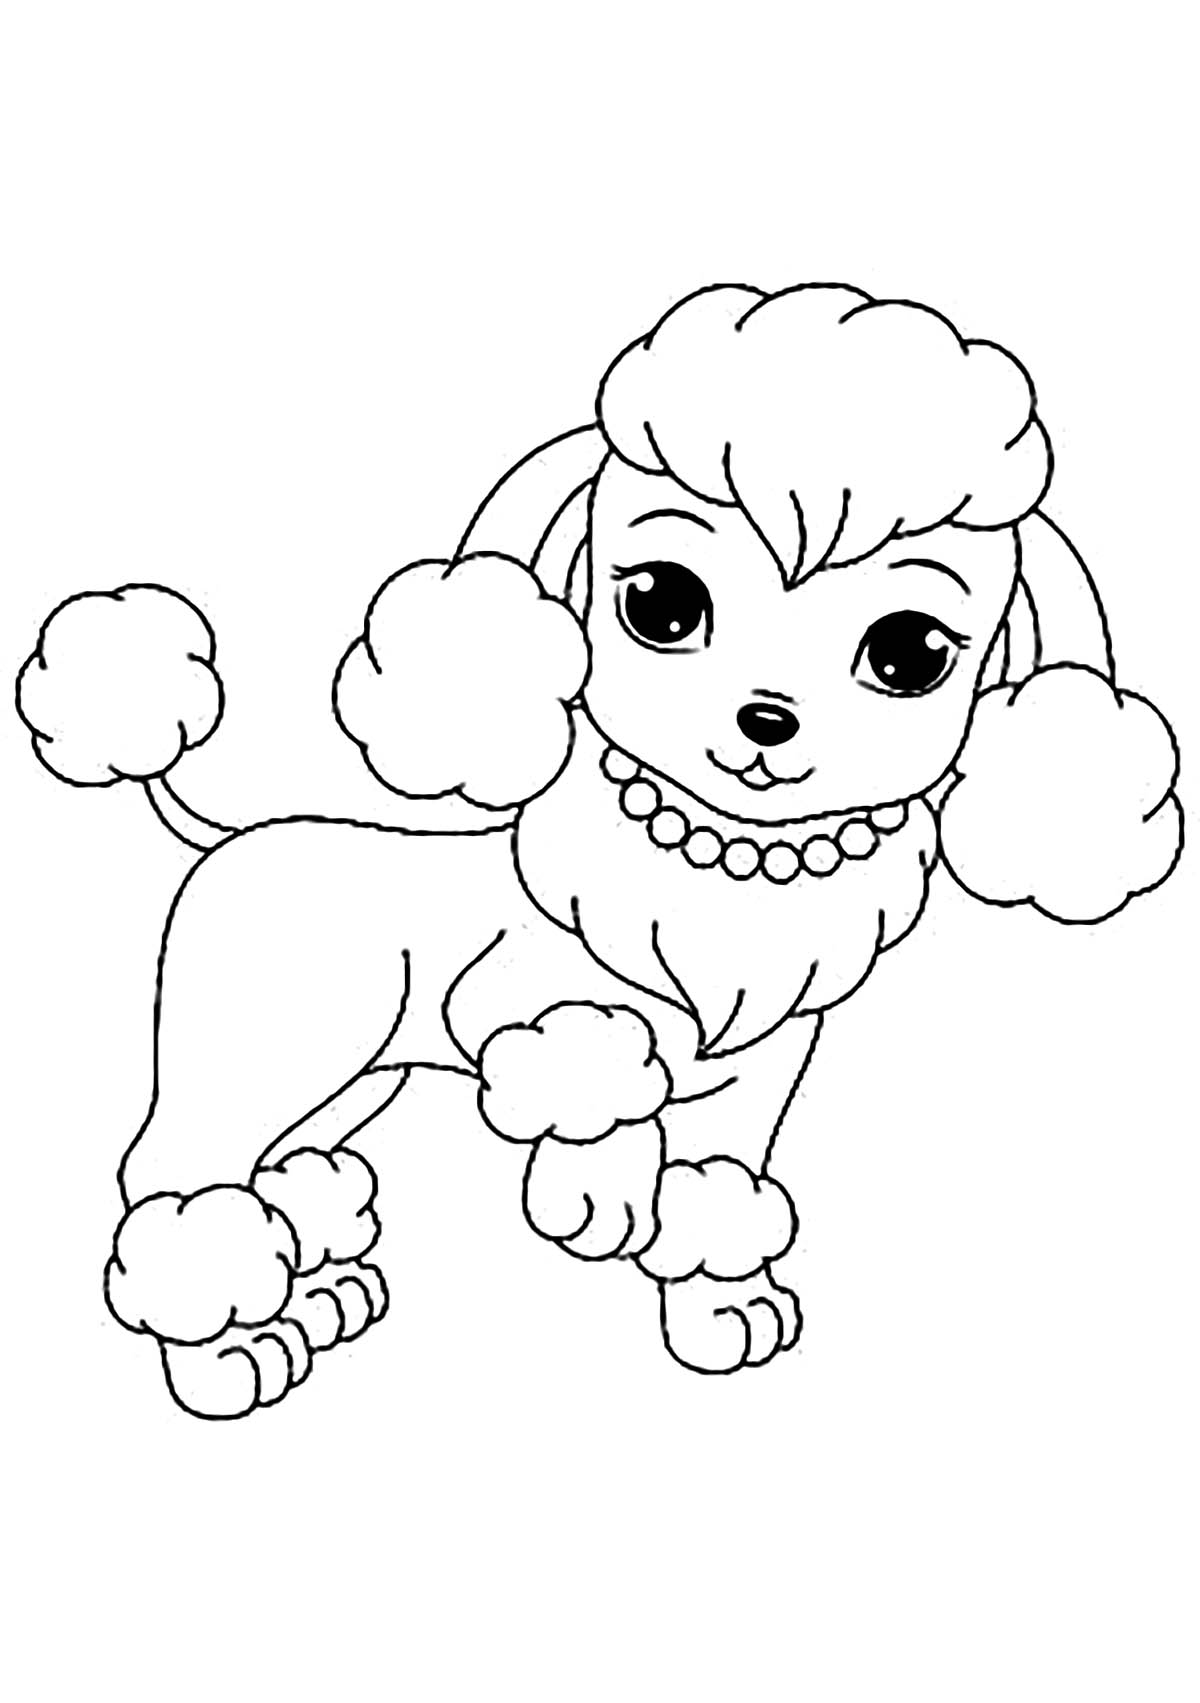 dogs coloring pictures baby dog coloring page free coloring pages online dogs coloring pictures